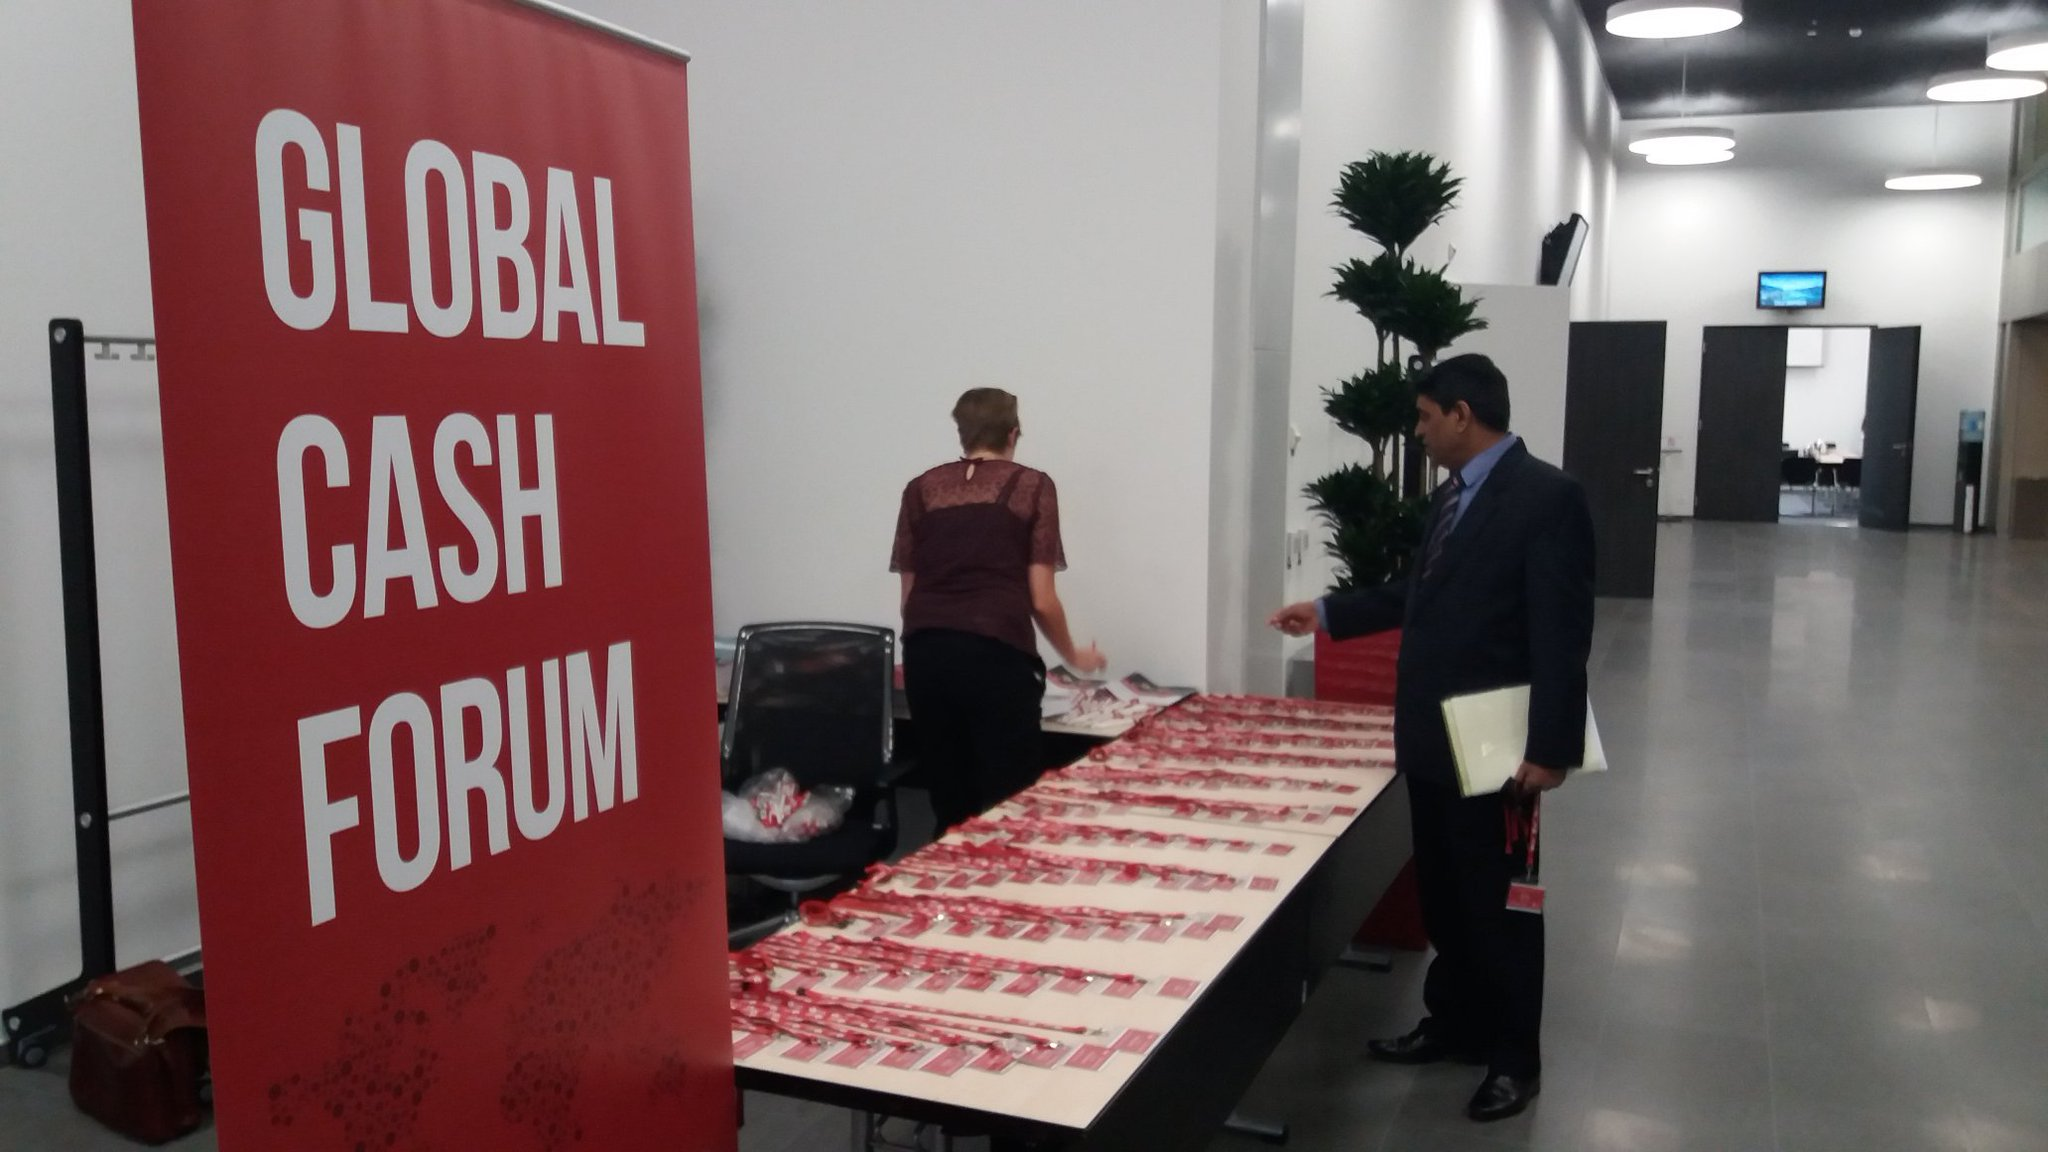 The day arrives! Today is all about the #globalcashforum! And here's our first registrant https://t.co/OGiIECSWCN